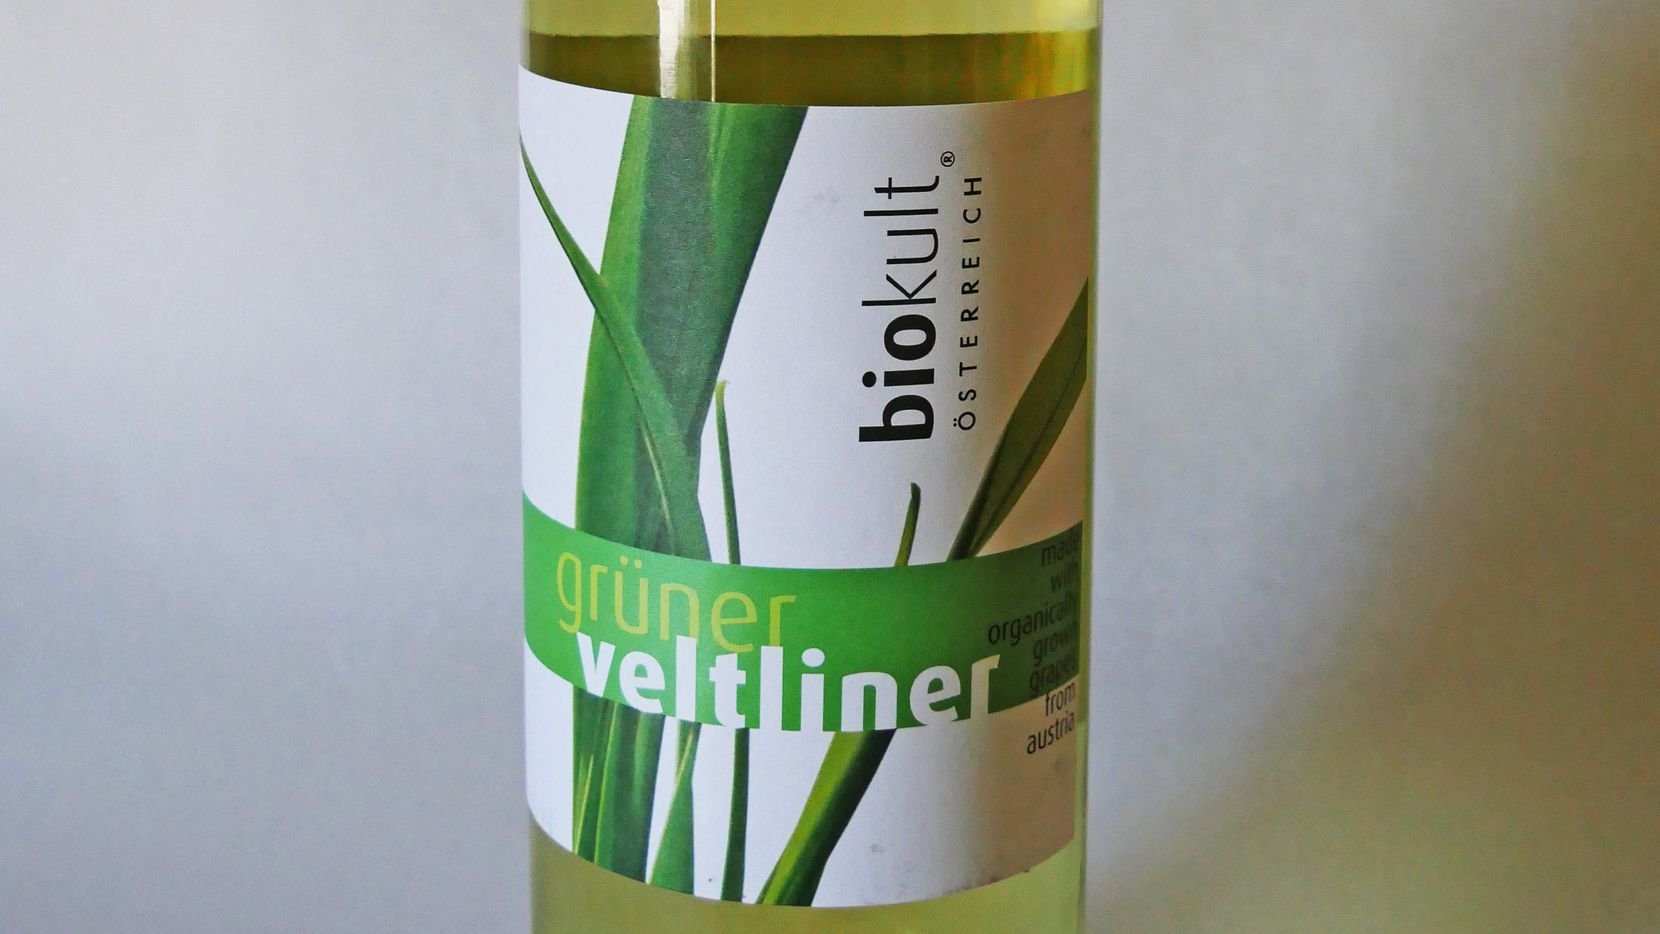 Gruner Veltliner is Austria's best white wine variety, and this one from Biokult is under $15.